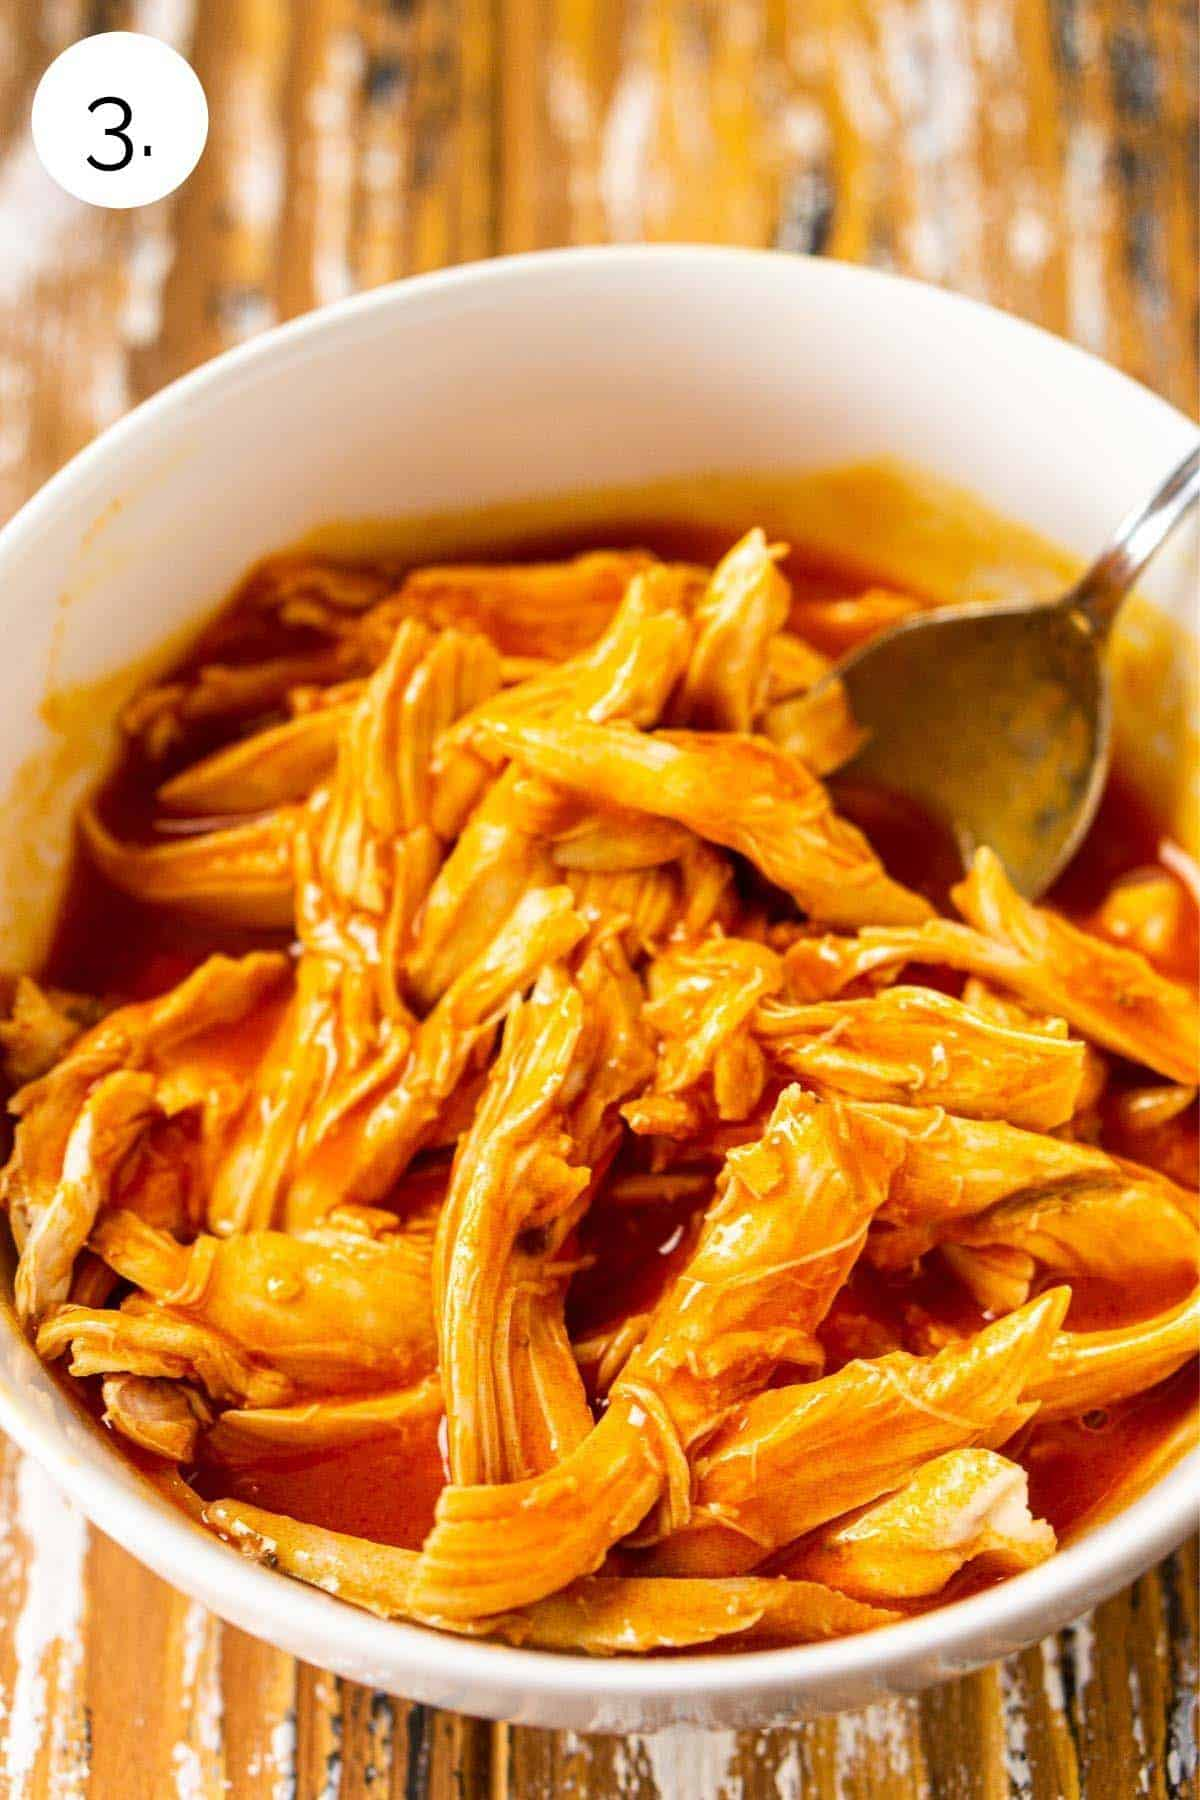 Mixing the Buffalo sauce and chicken together in a white bowl.